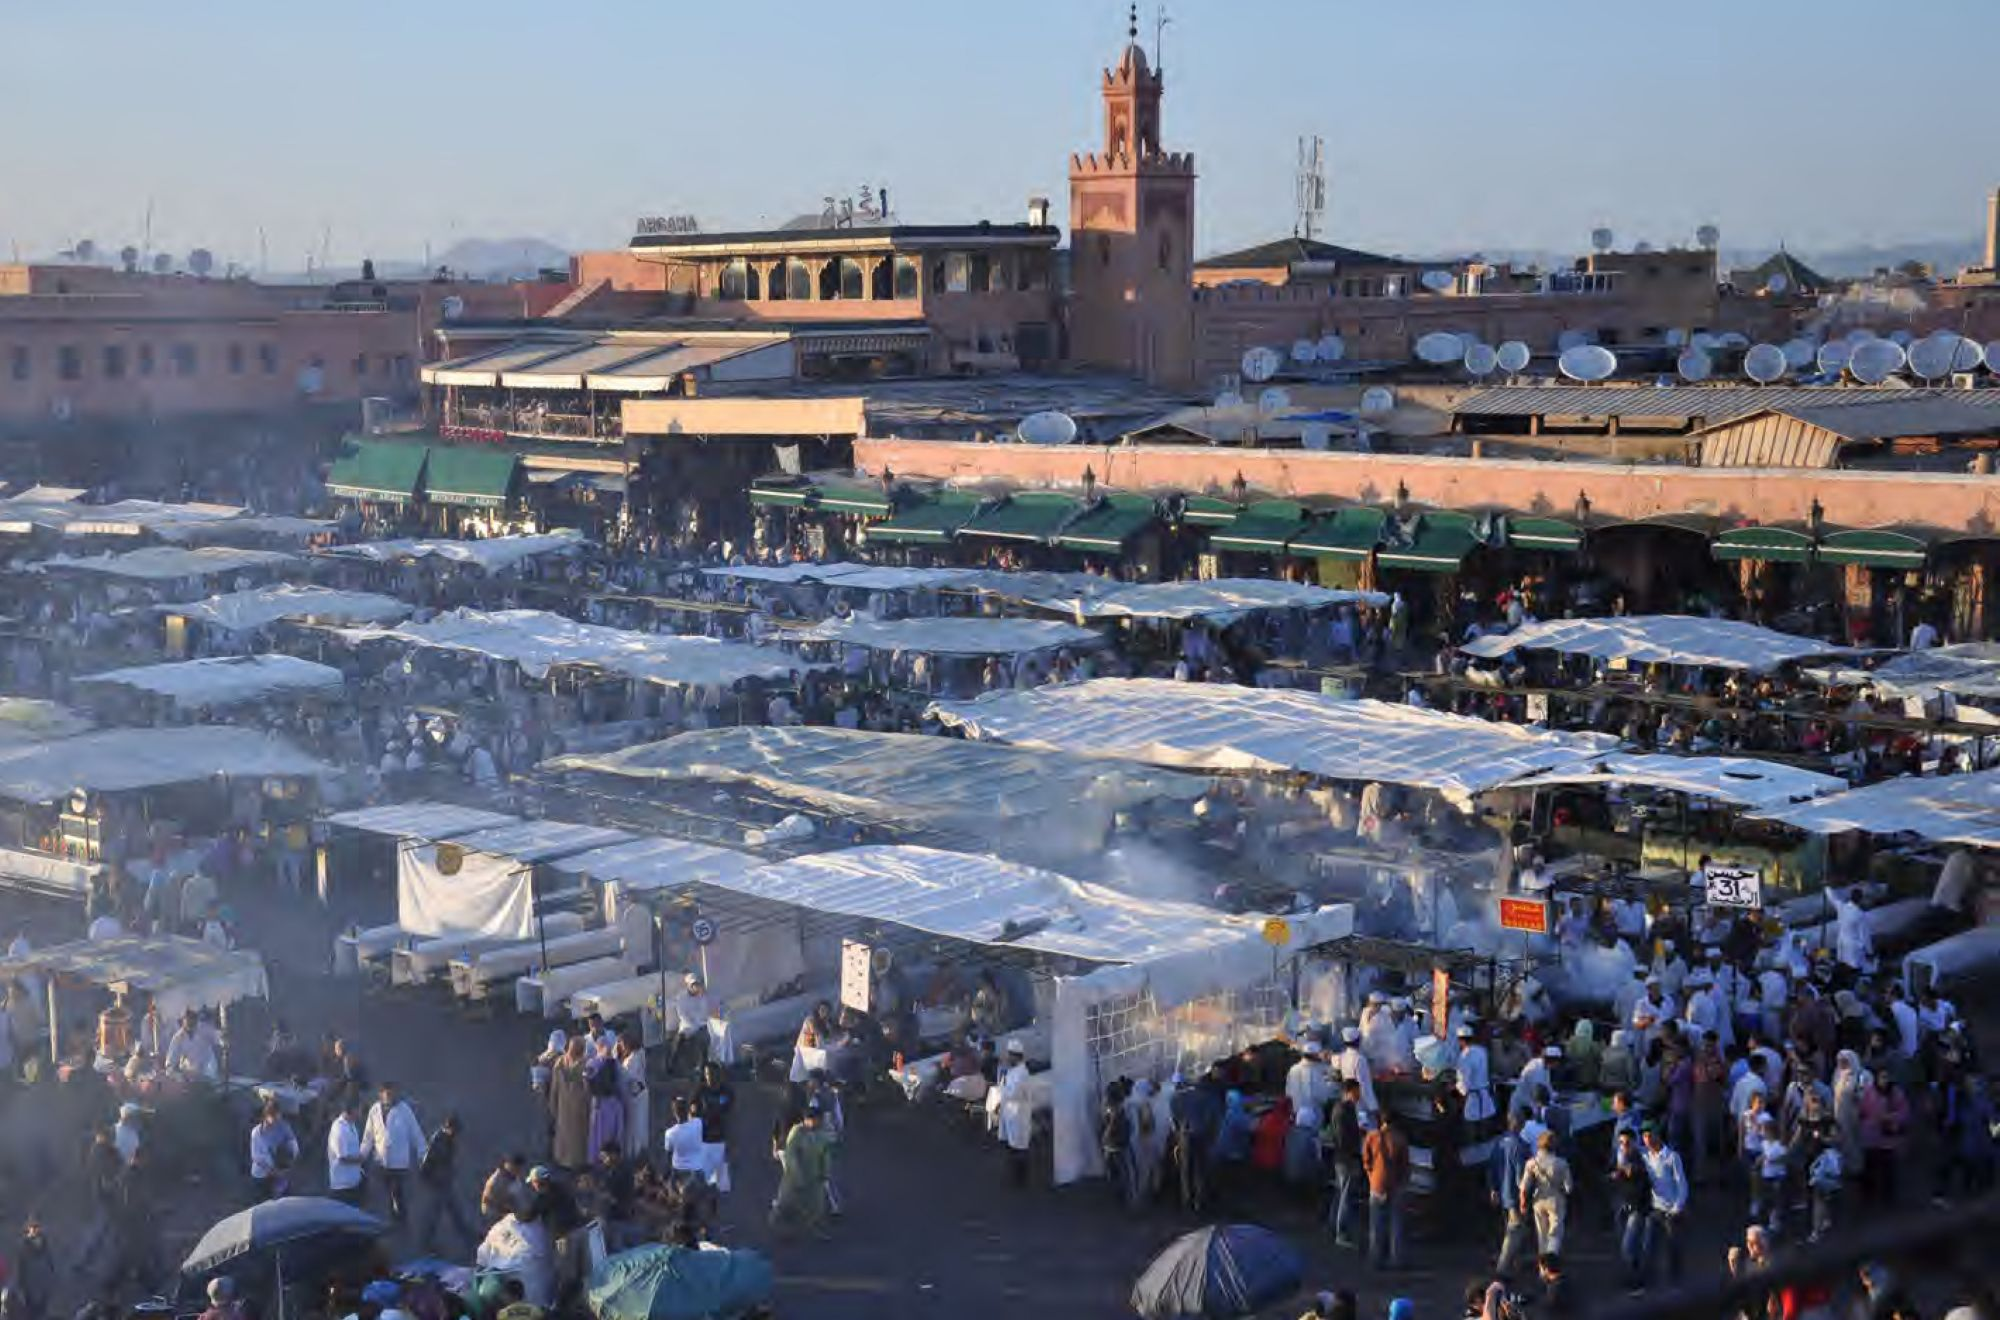 Pages 72-73: Market in Marrakesh